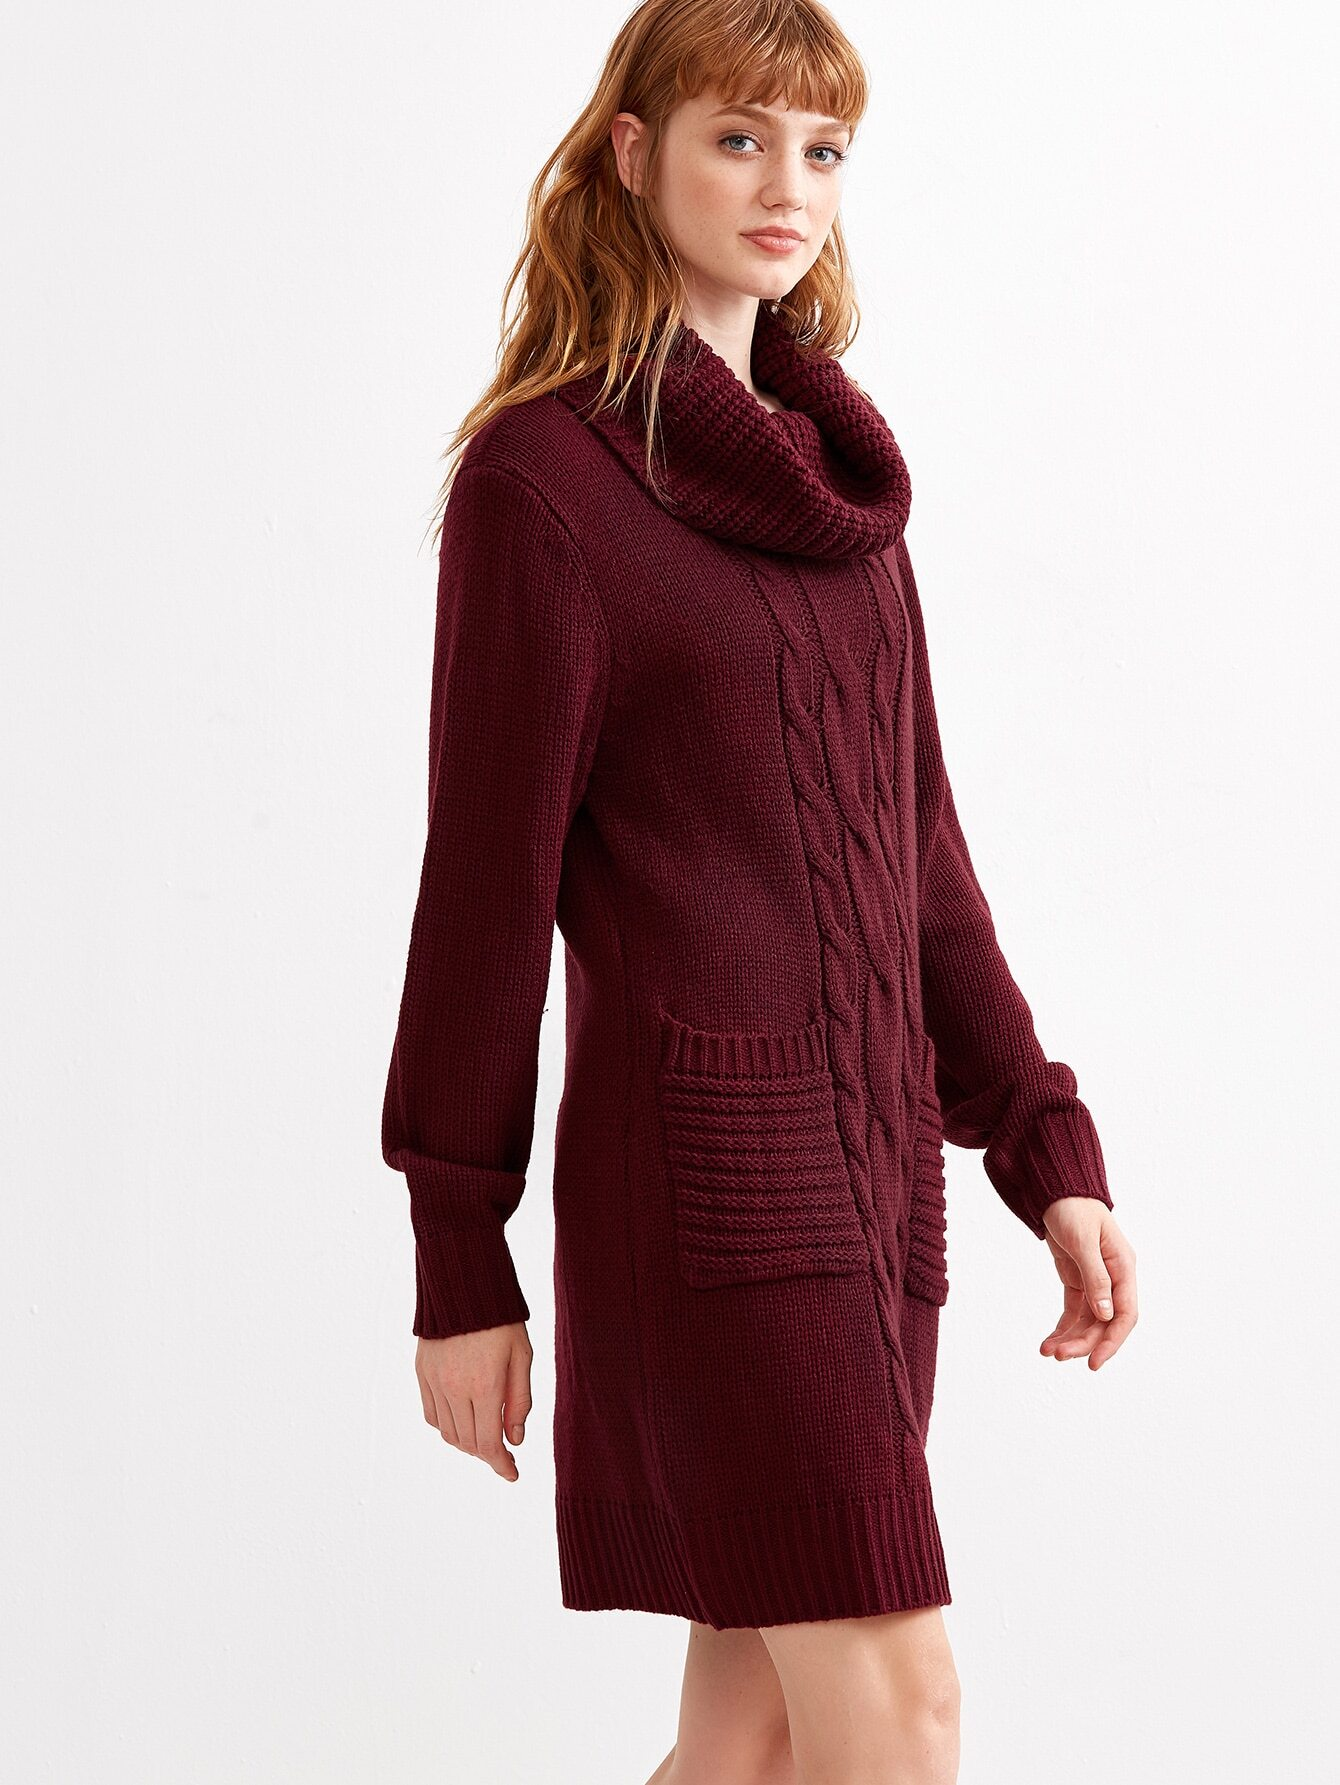 Burgundy Cowl Neck Sweater Dress Baggage Clothing